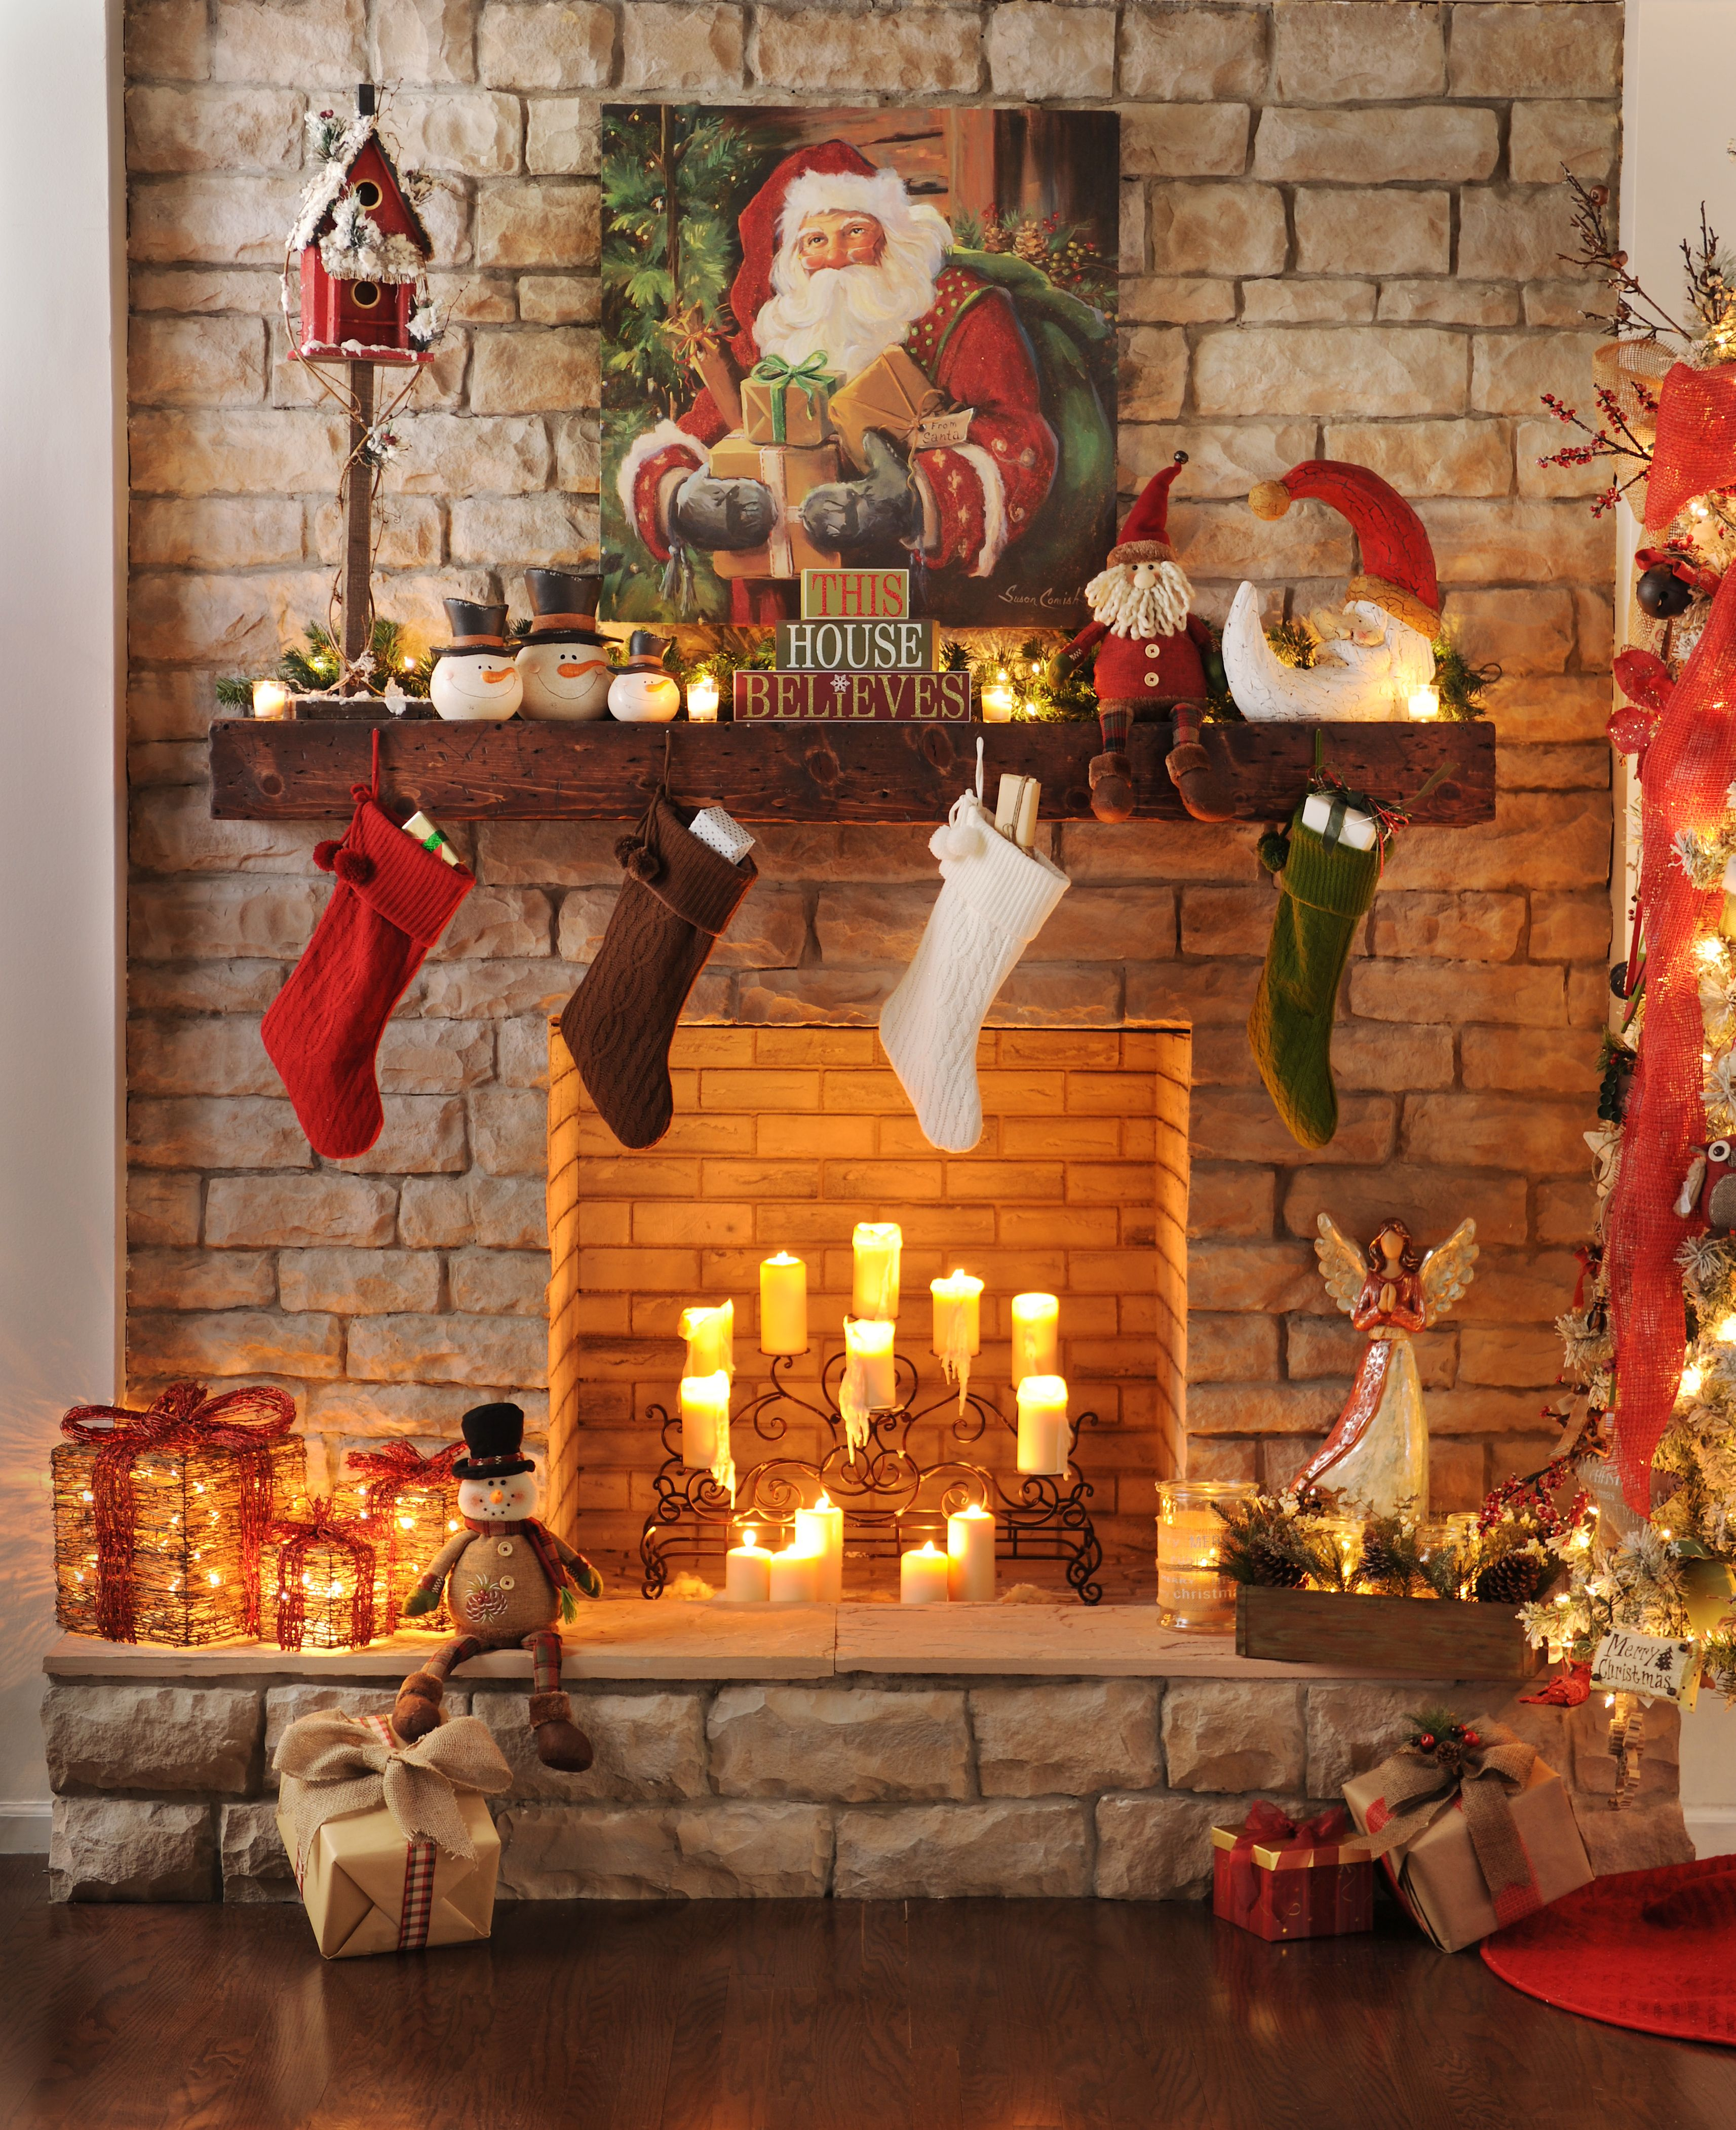 Rustic Mantel Décor That Will Adorn Your Bored To Death: How To Create A Festive Holiday-Ready Home